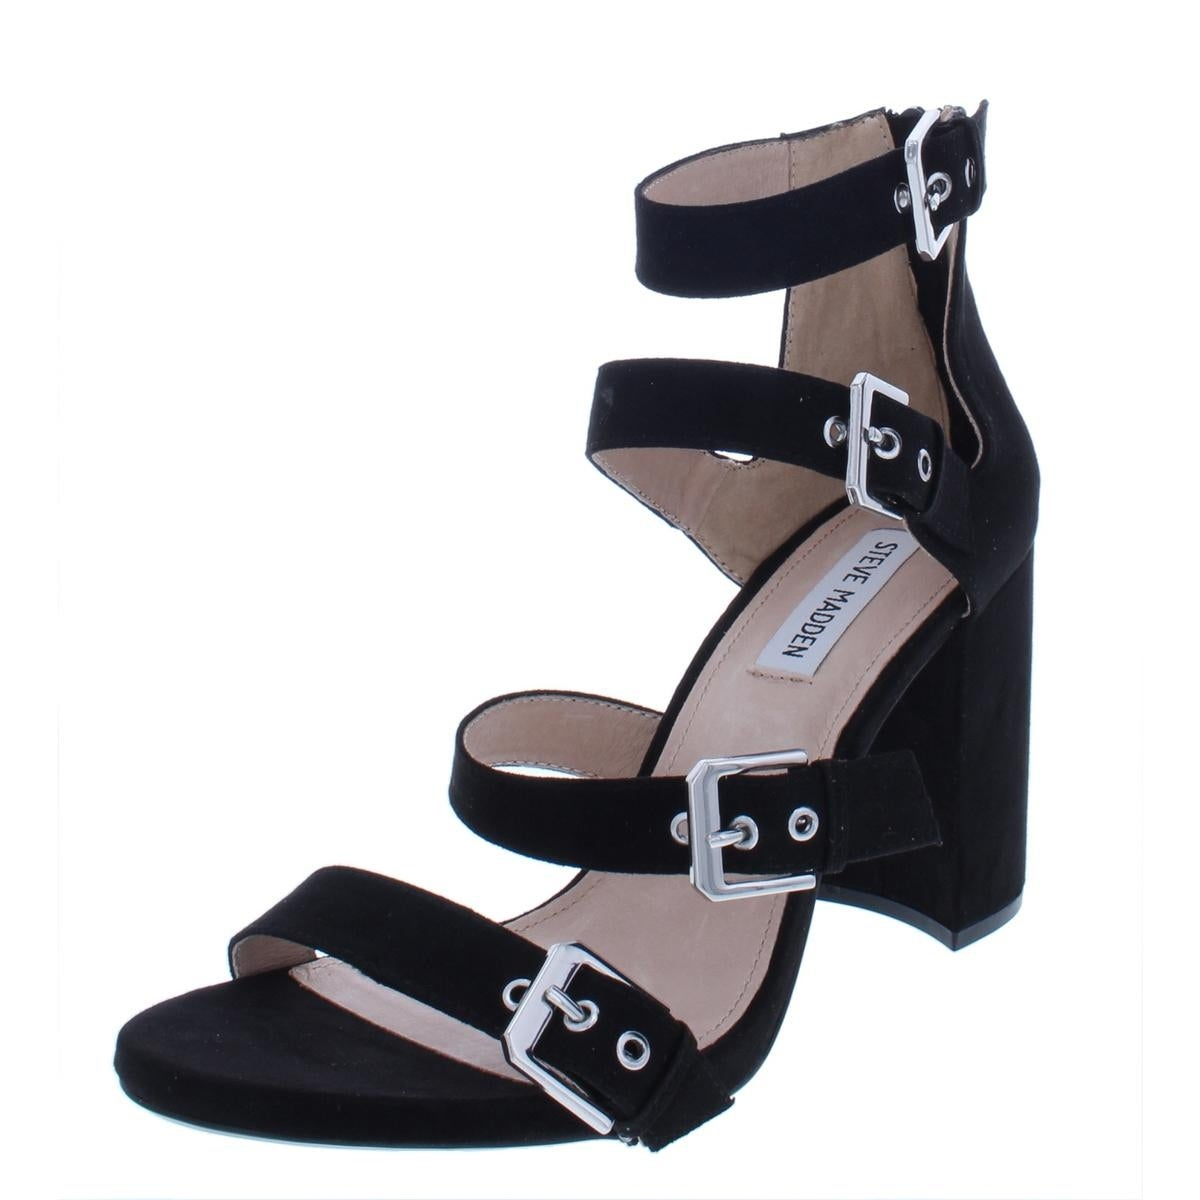 0dfd019bf994 Shop Steve Madden Womens Shani Dress Sandals Strappy Block Heel - 9.5 Medium  (B